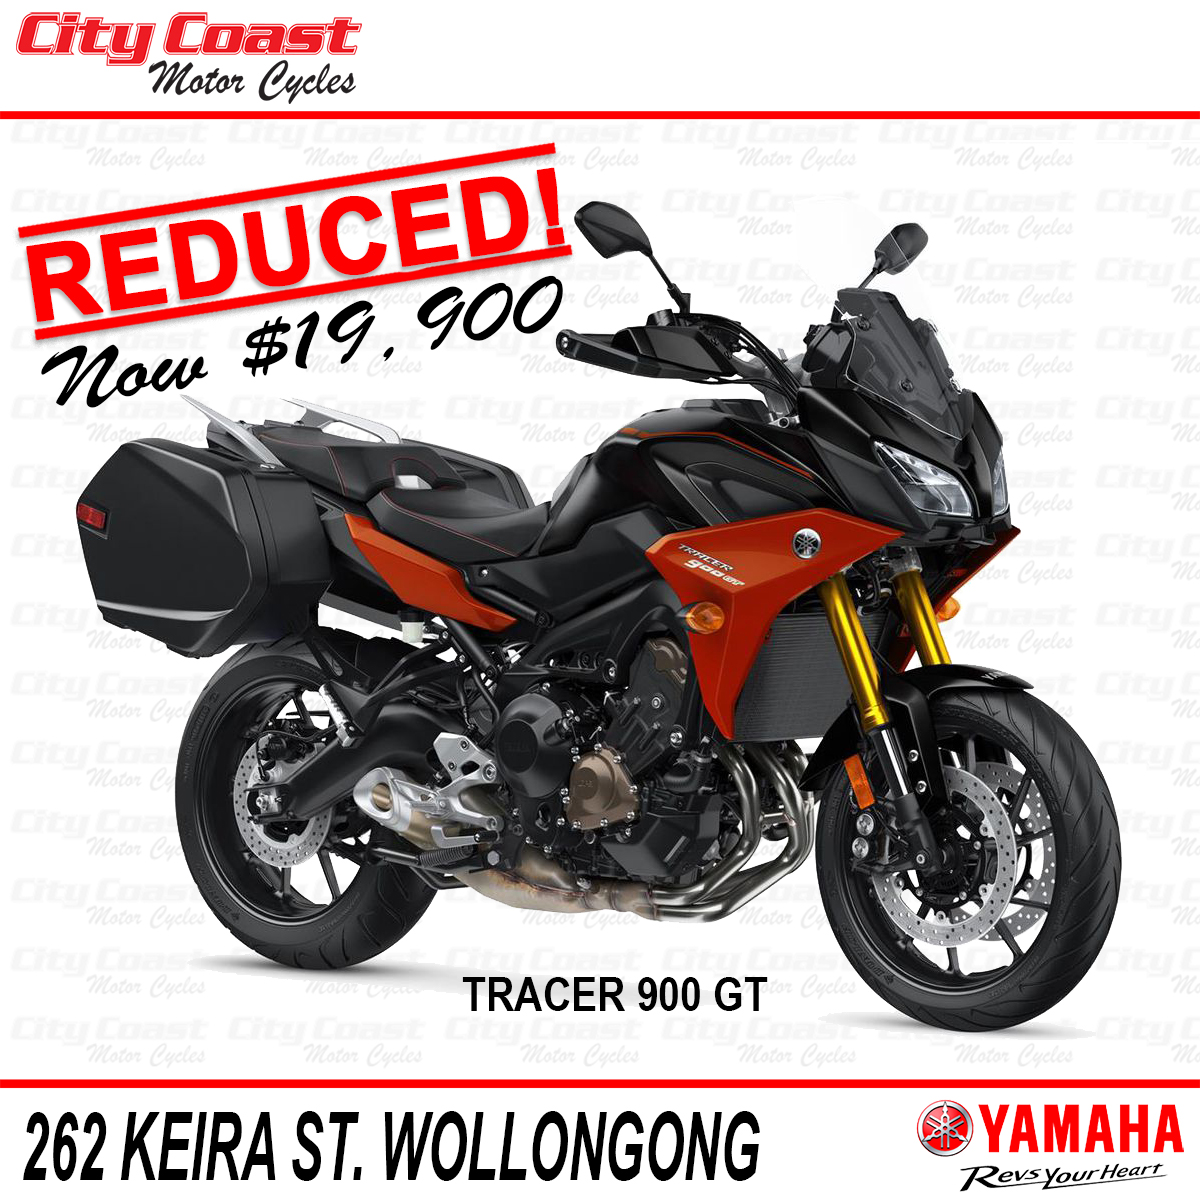 2020 Yamaha Tracer 900 GT reduced